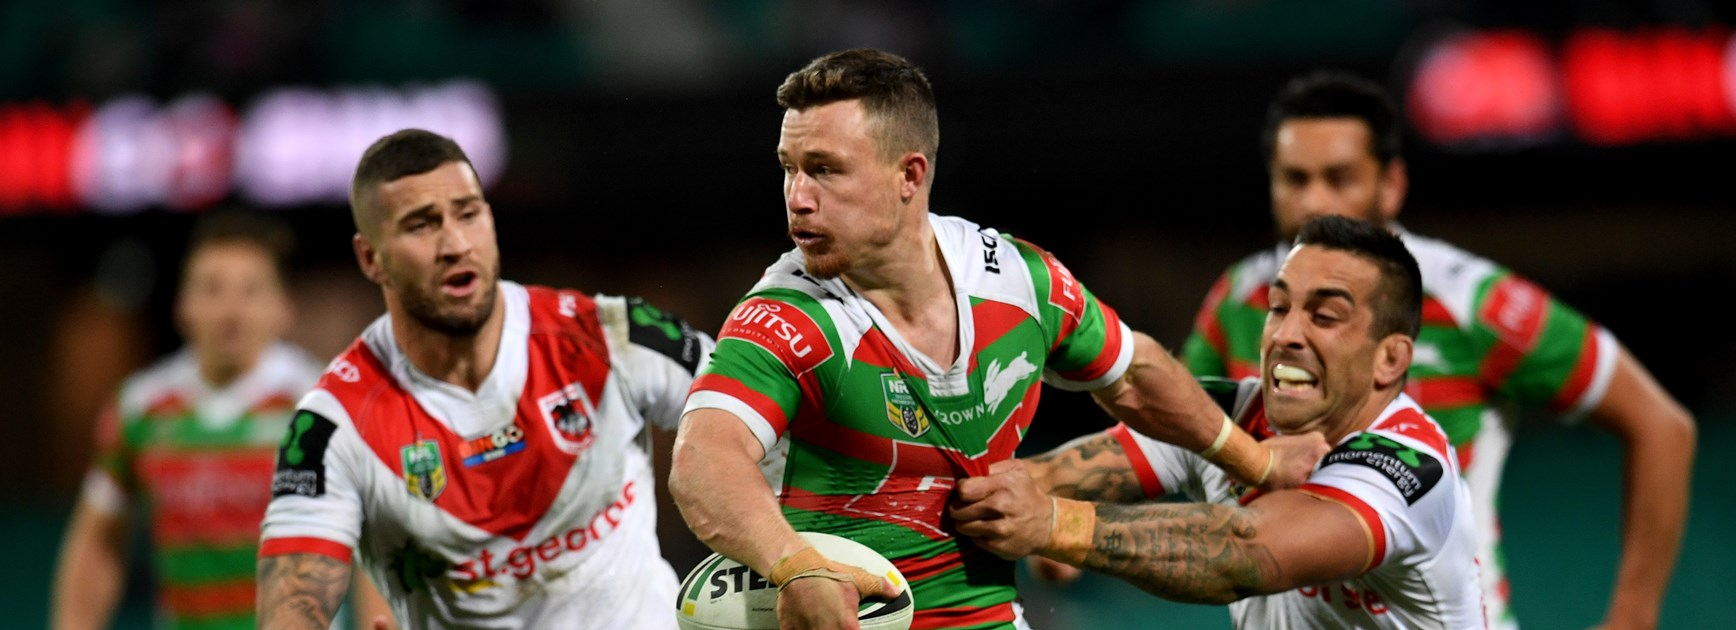 Rabbitohs v Dragons - All you need to know